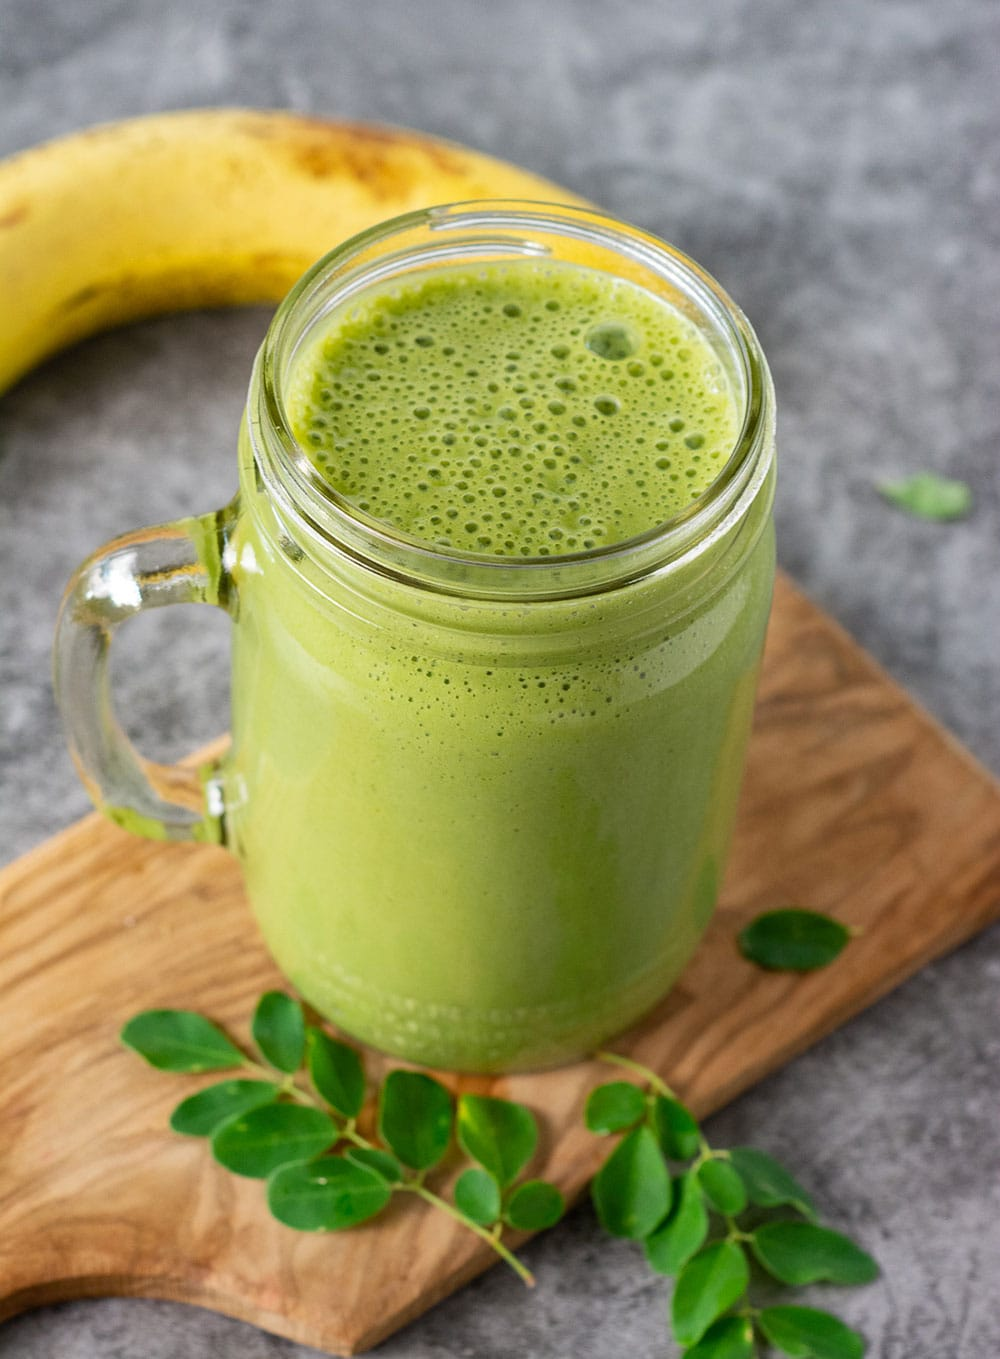 Overlay of moringa smoothie in a glass jar on a wooden cutting board, with moringa leaves and ripe banana